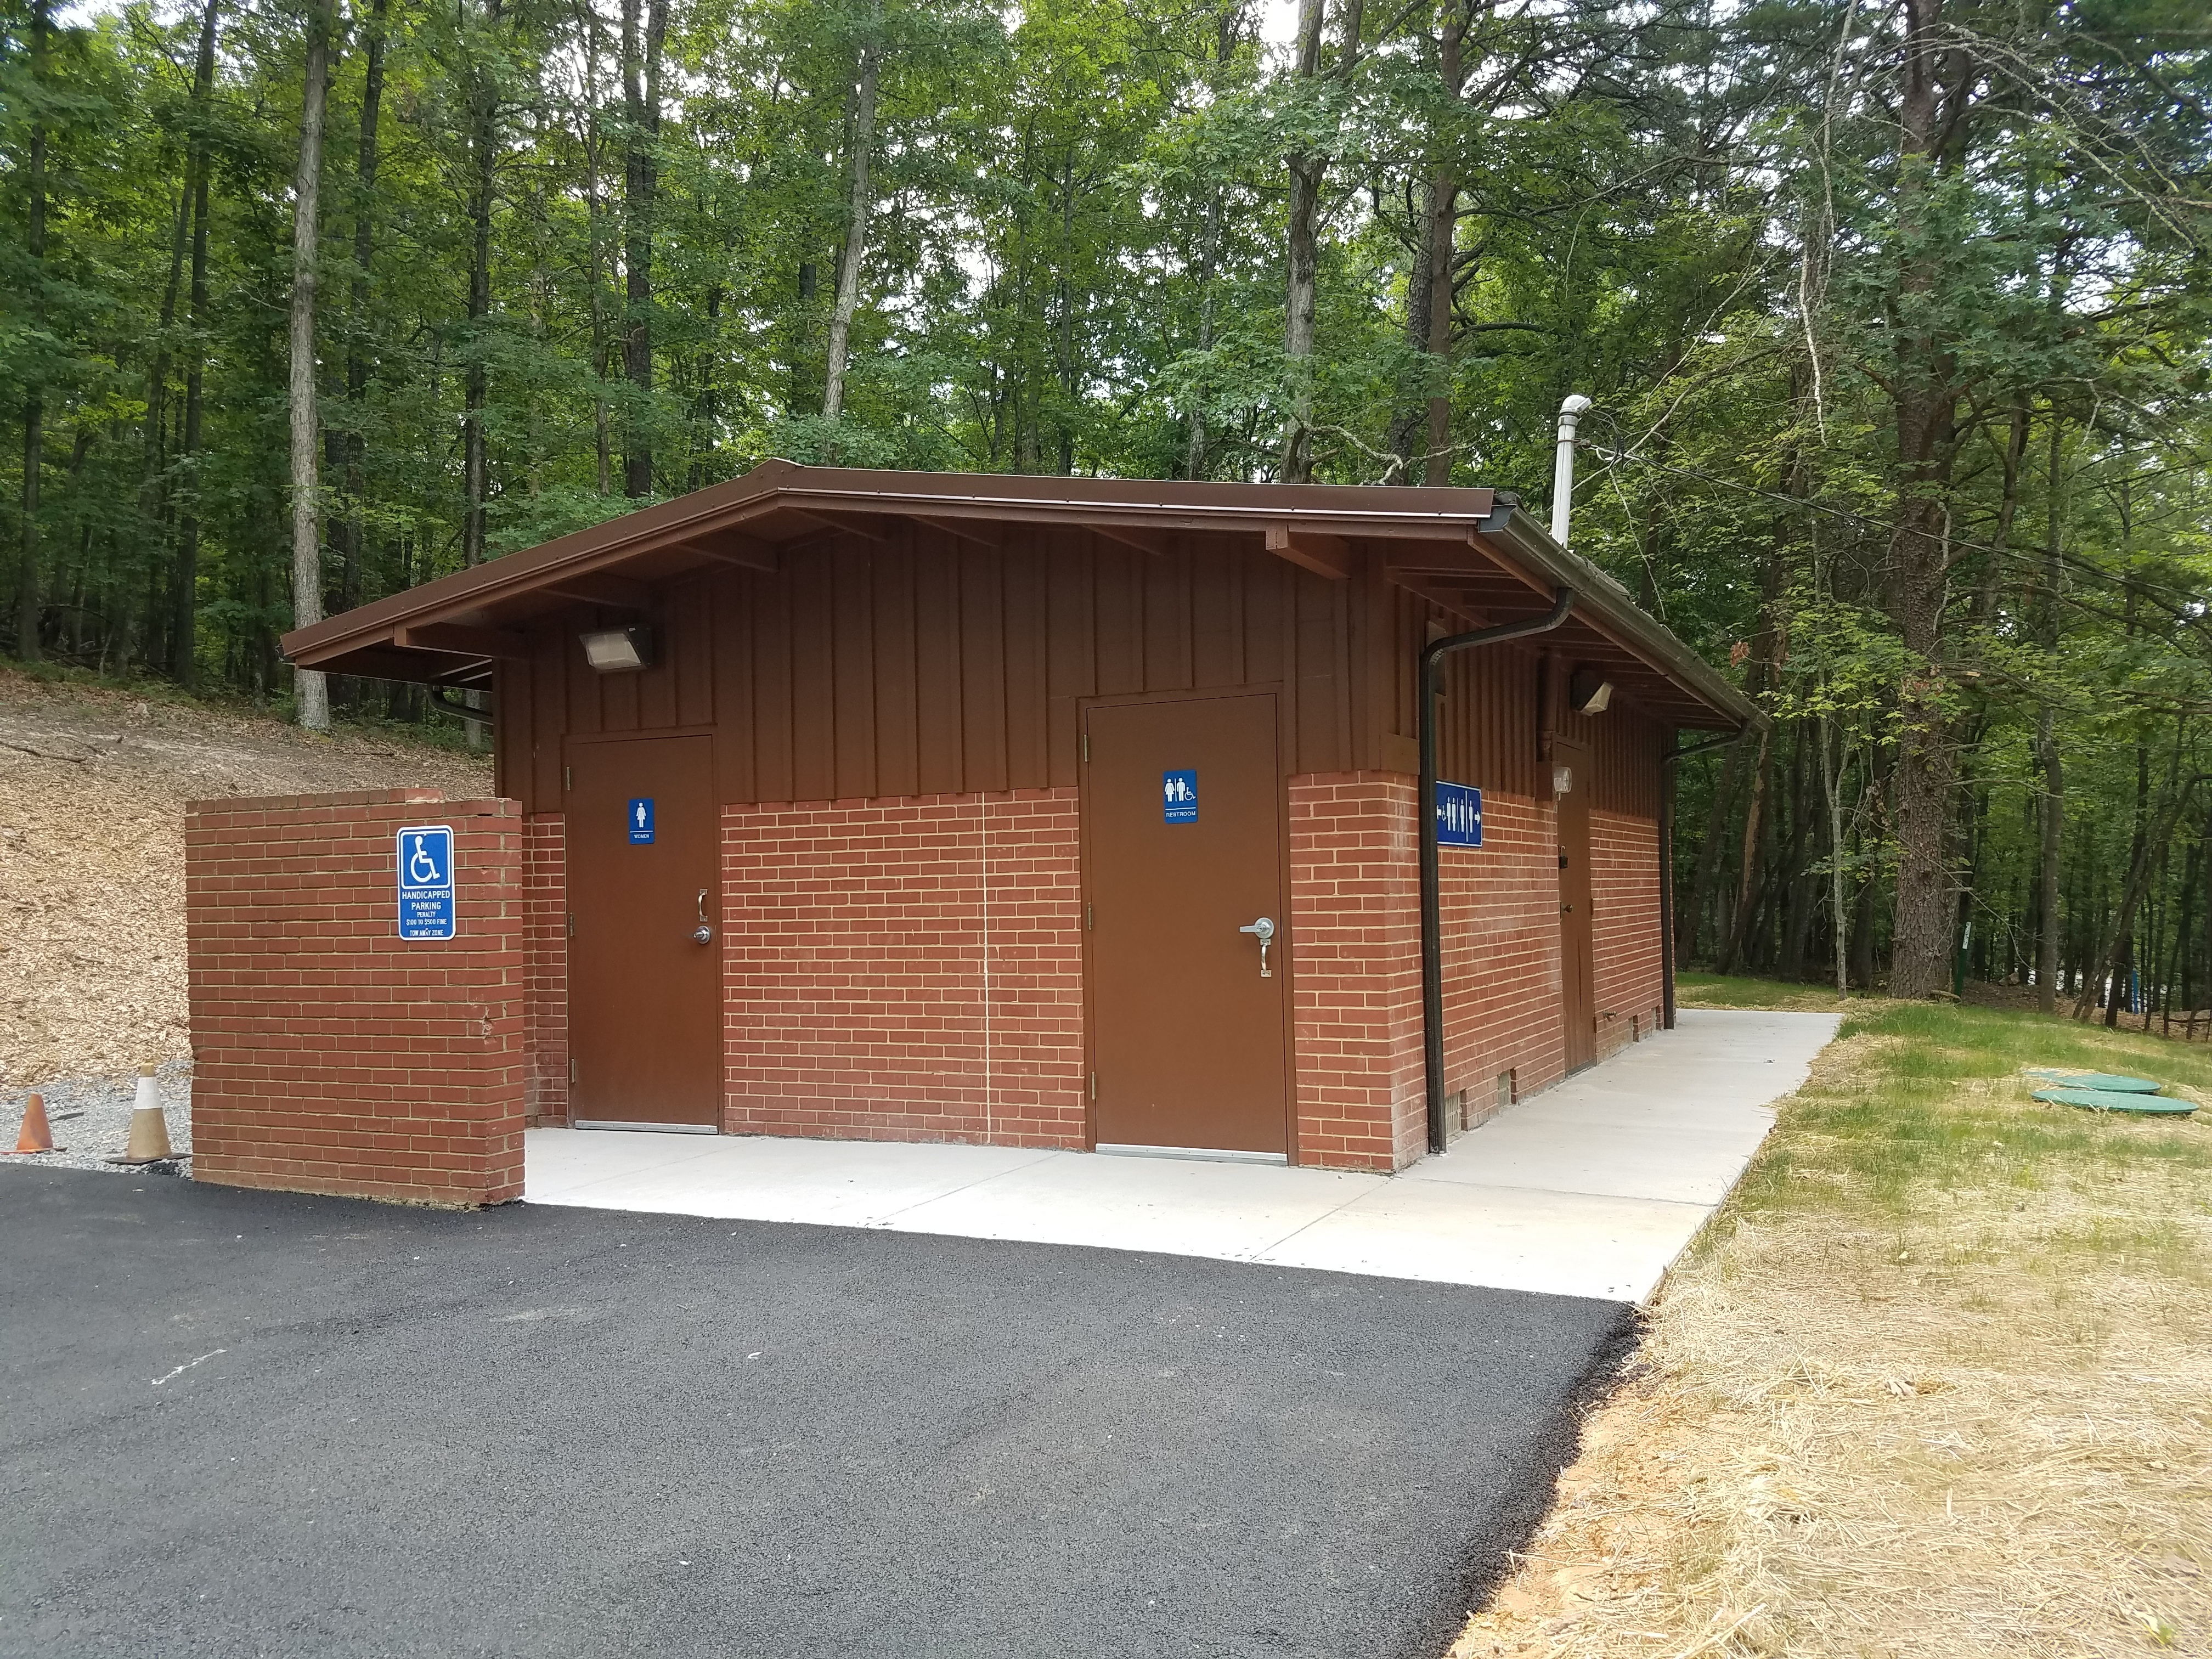 An ADA accessible bathroom is available near the picnic shelter.